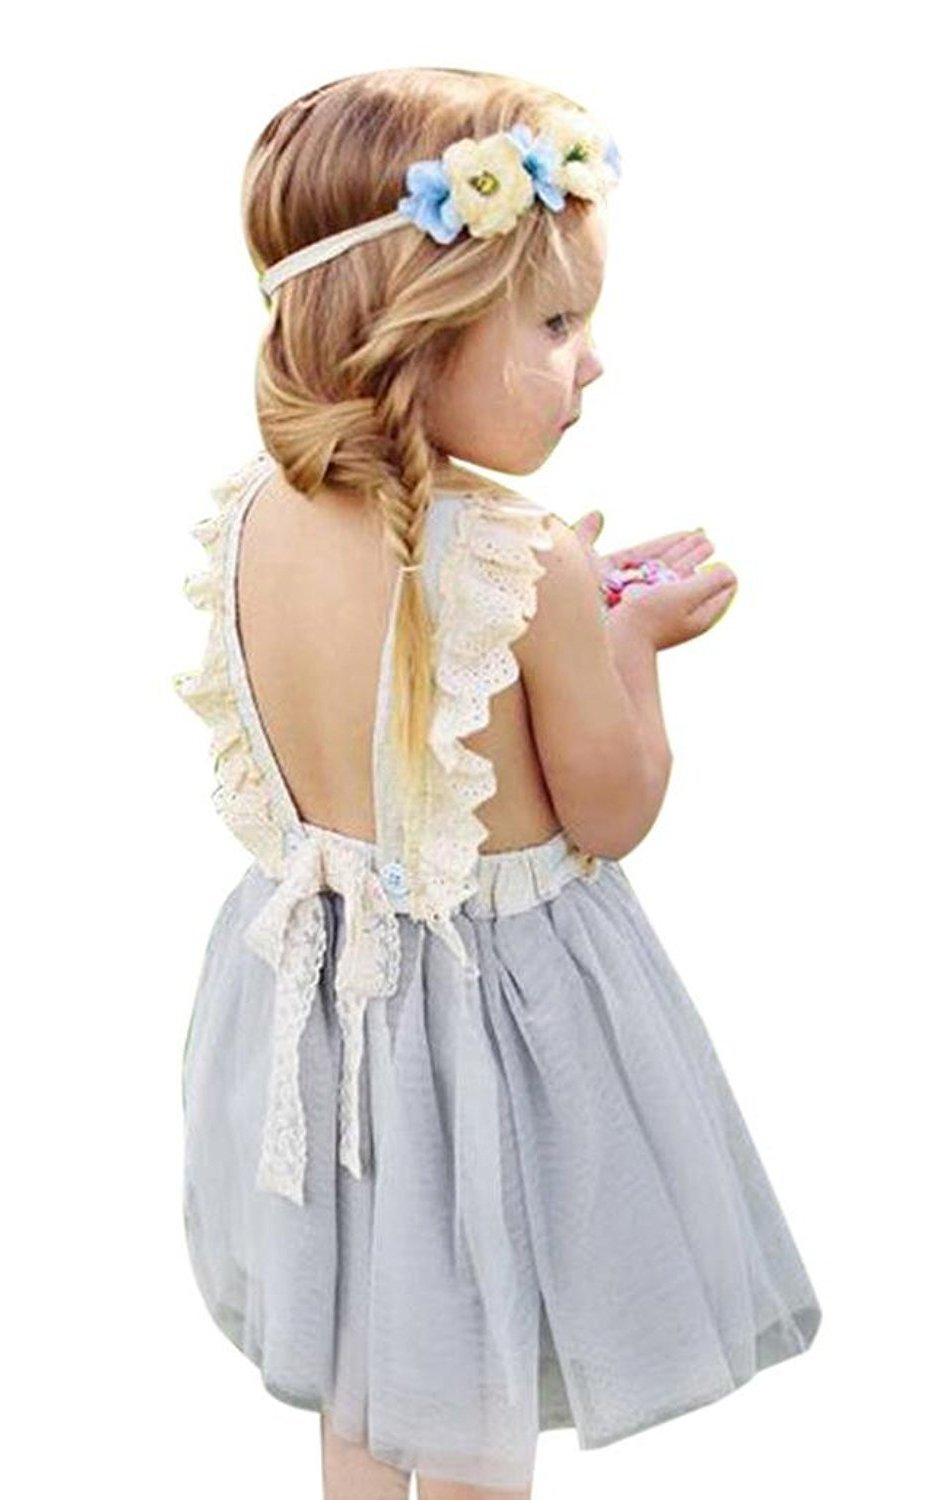 LOliSWan Little Girls Fairy Lace Princess Dress Ruffles Ballerina Tulle Tutu Toddlers Dress Up Outfits For Wedding Party (Gray, 3T)